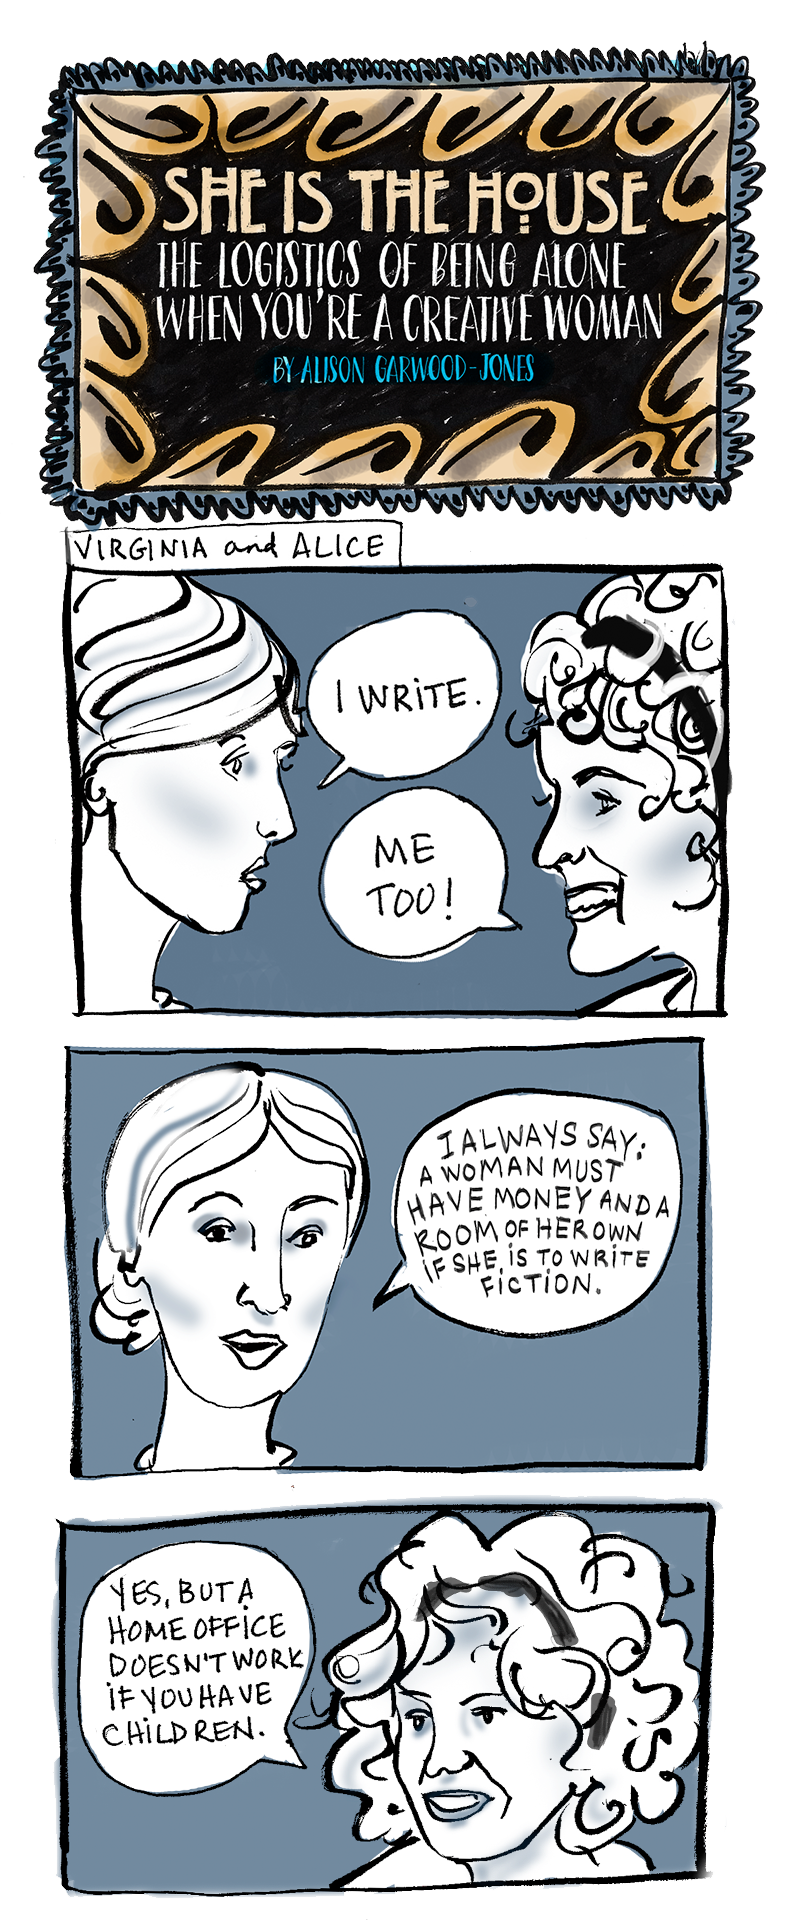 Virginia Woolf and Alice Munro in conversation - comic by Alison Garwood-Jones